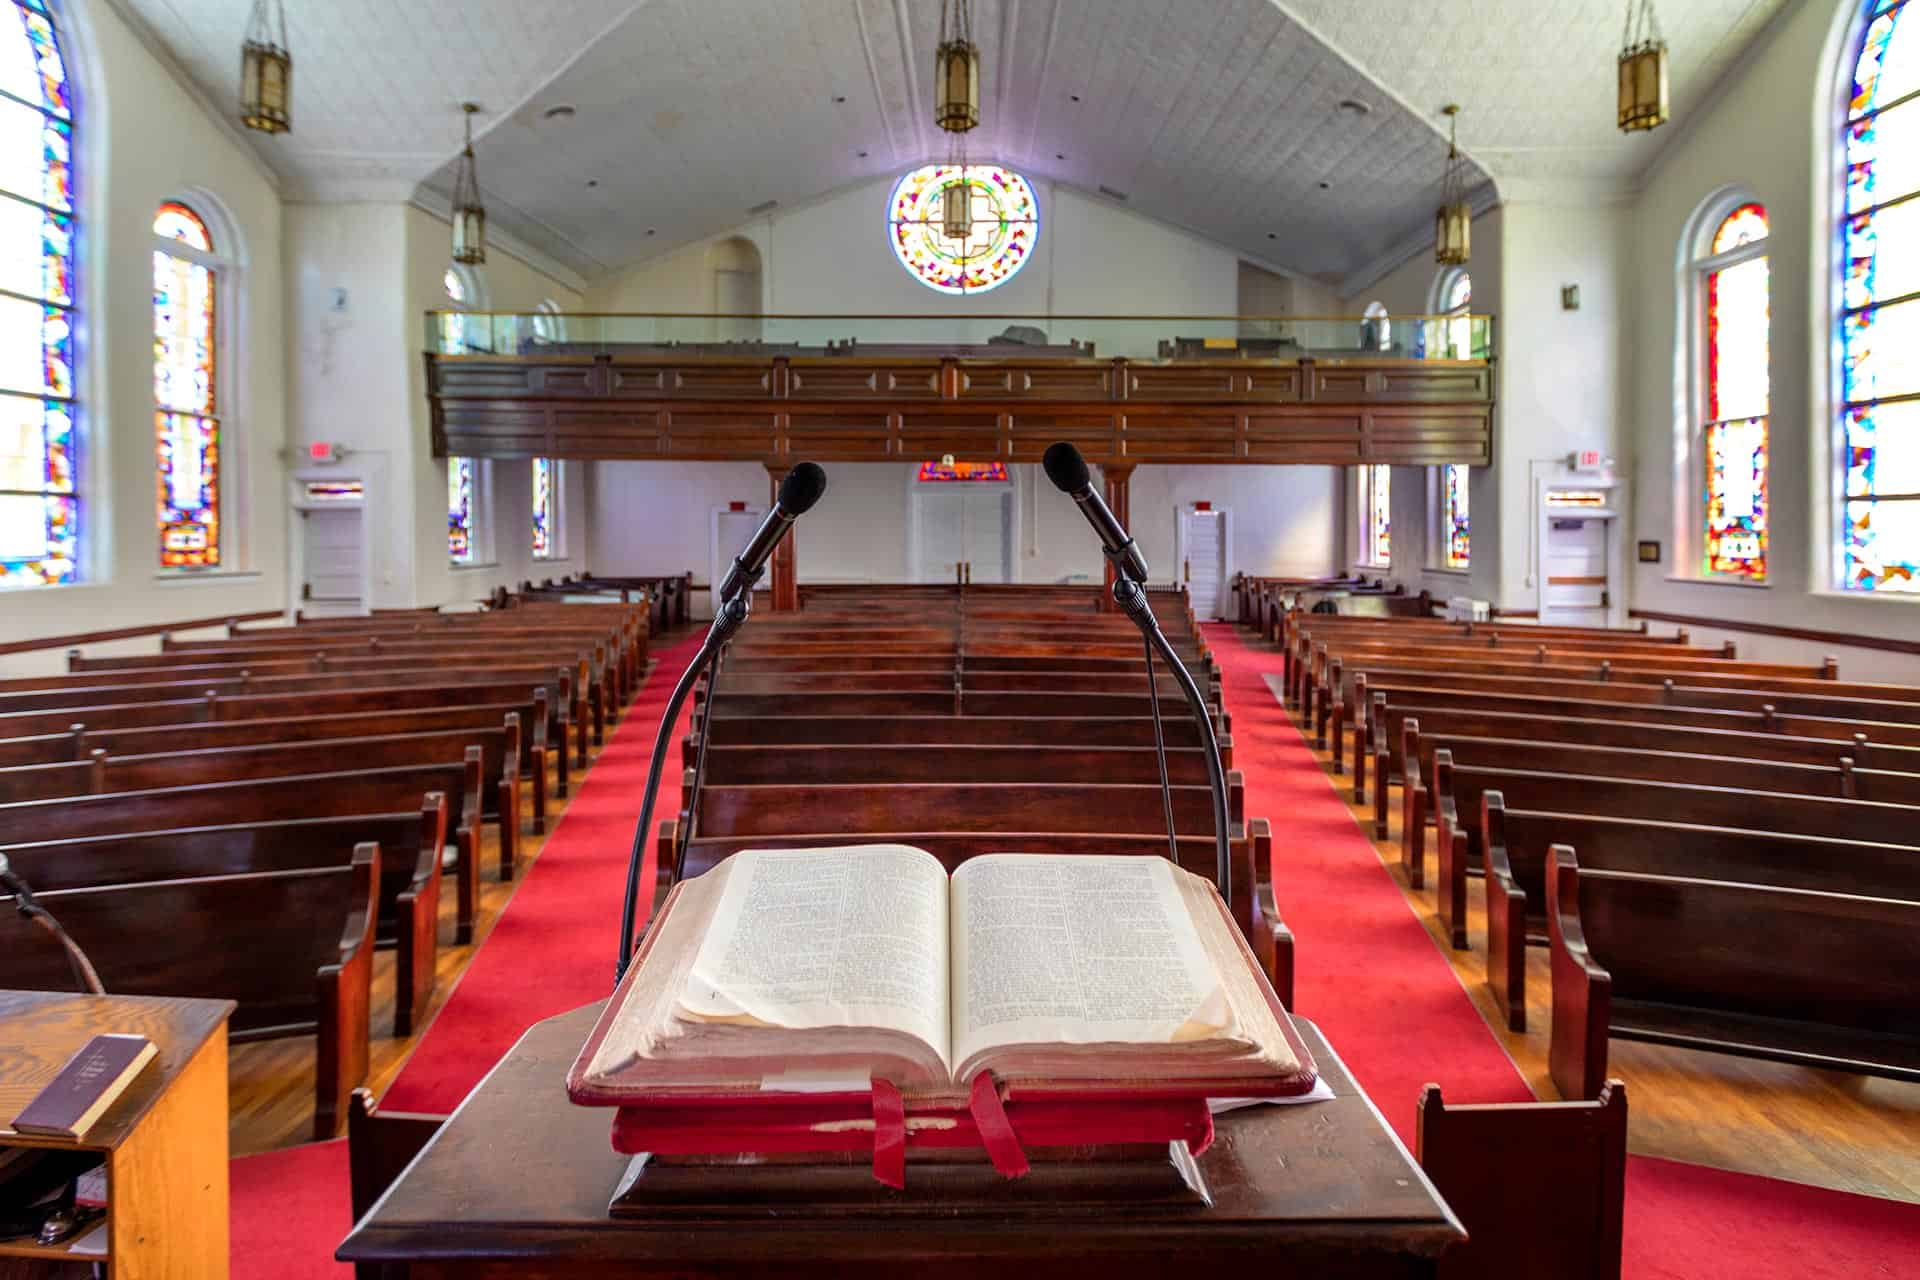 Muebles Sivall Sl - First Baptist Church On Ripley Street Us Civil Rights Trail[mjhdah]https://content3.jdmagicbox.com/comp/bareilly/u5/9999px581.x581.111114145805.s7u5/catalogue/harsahaimal-shiamlal-jewellers-civil-lines-bareilly-jewellery-showrooms-86mpv.jpg